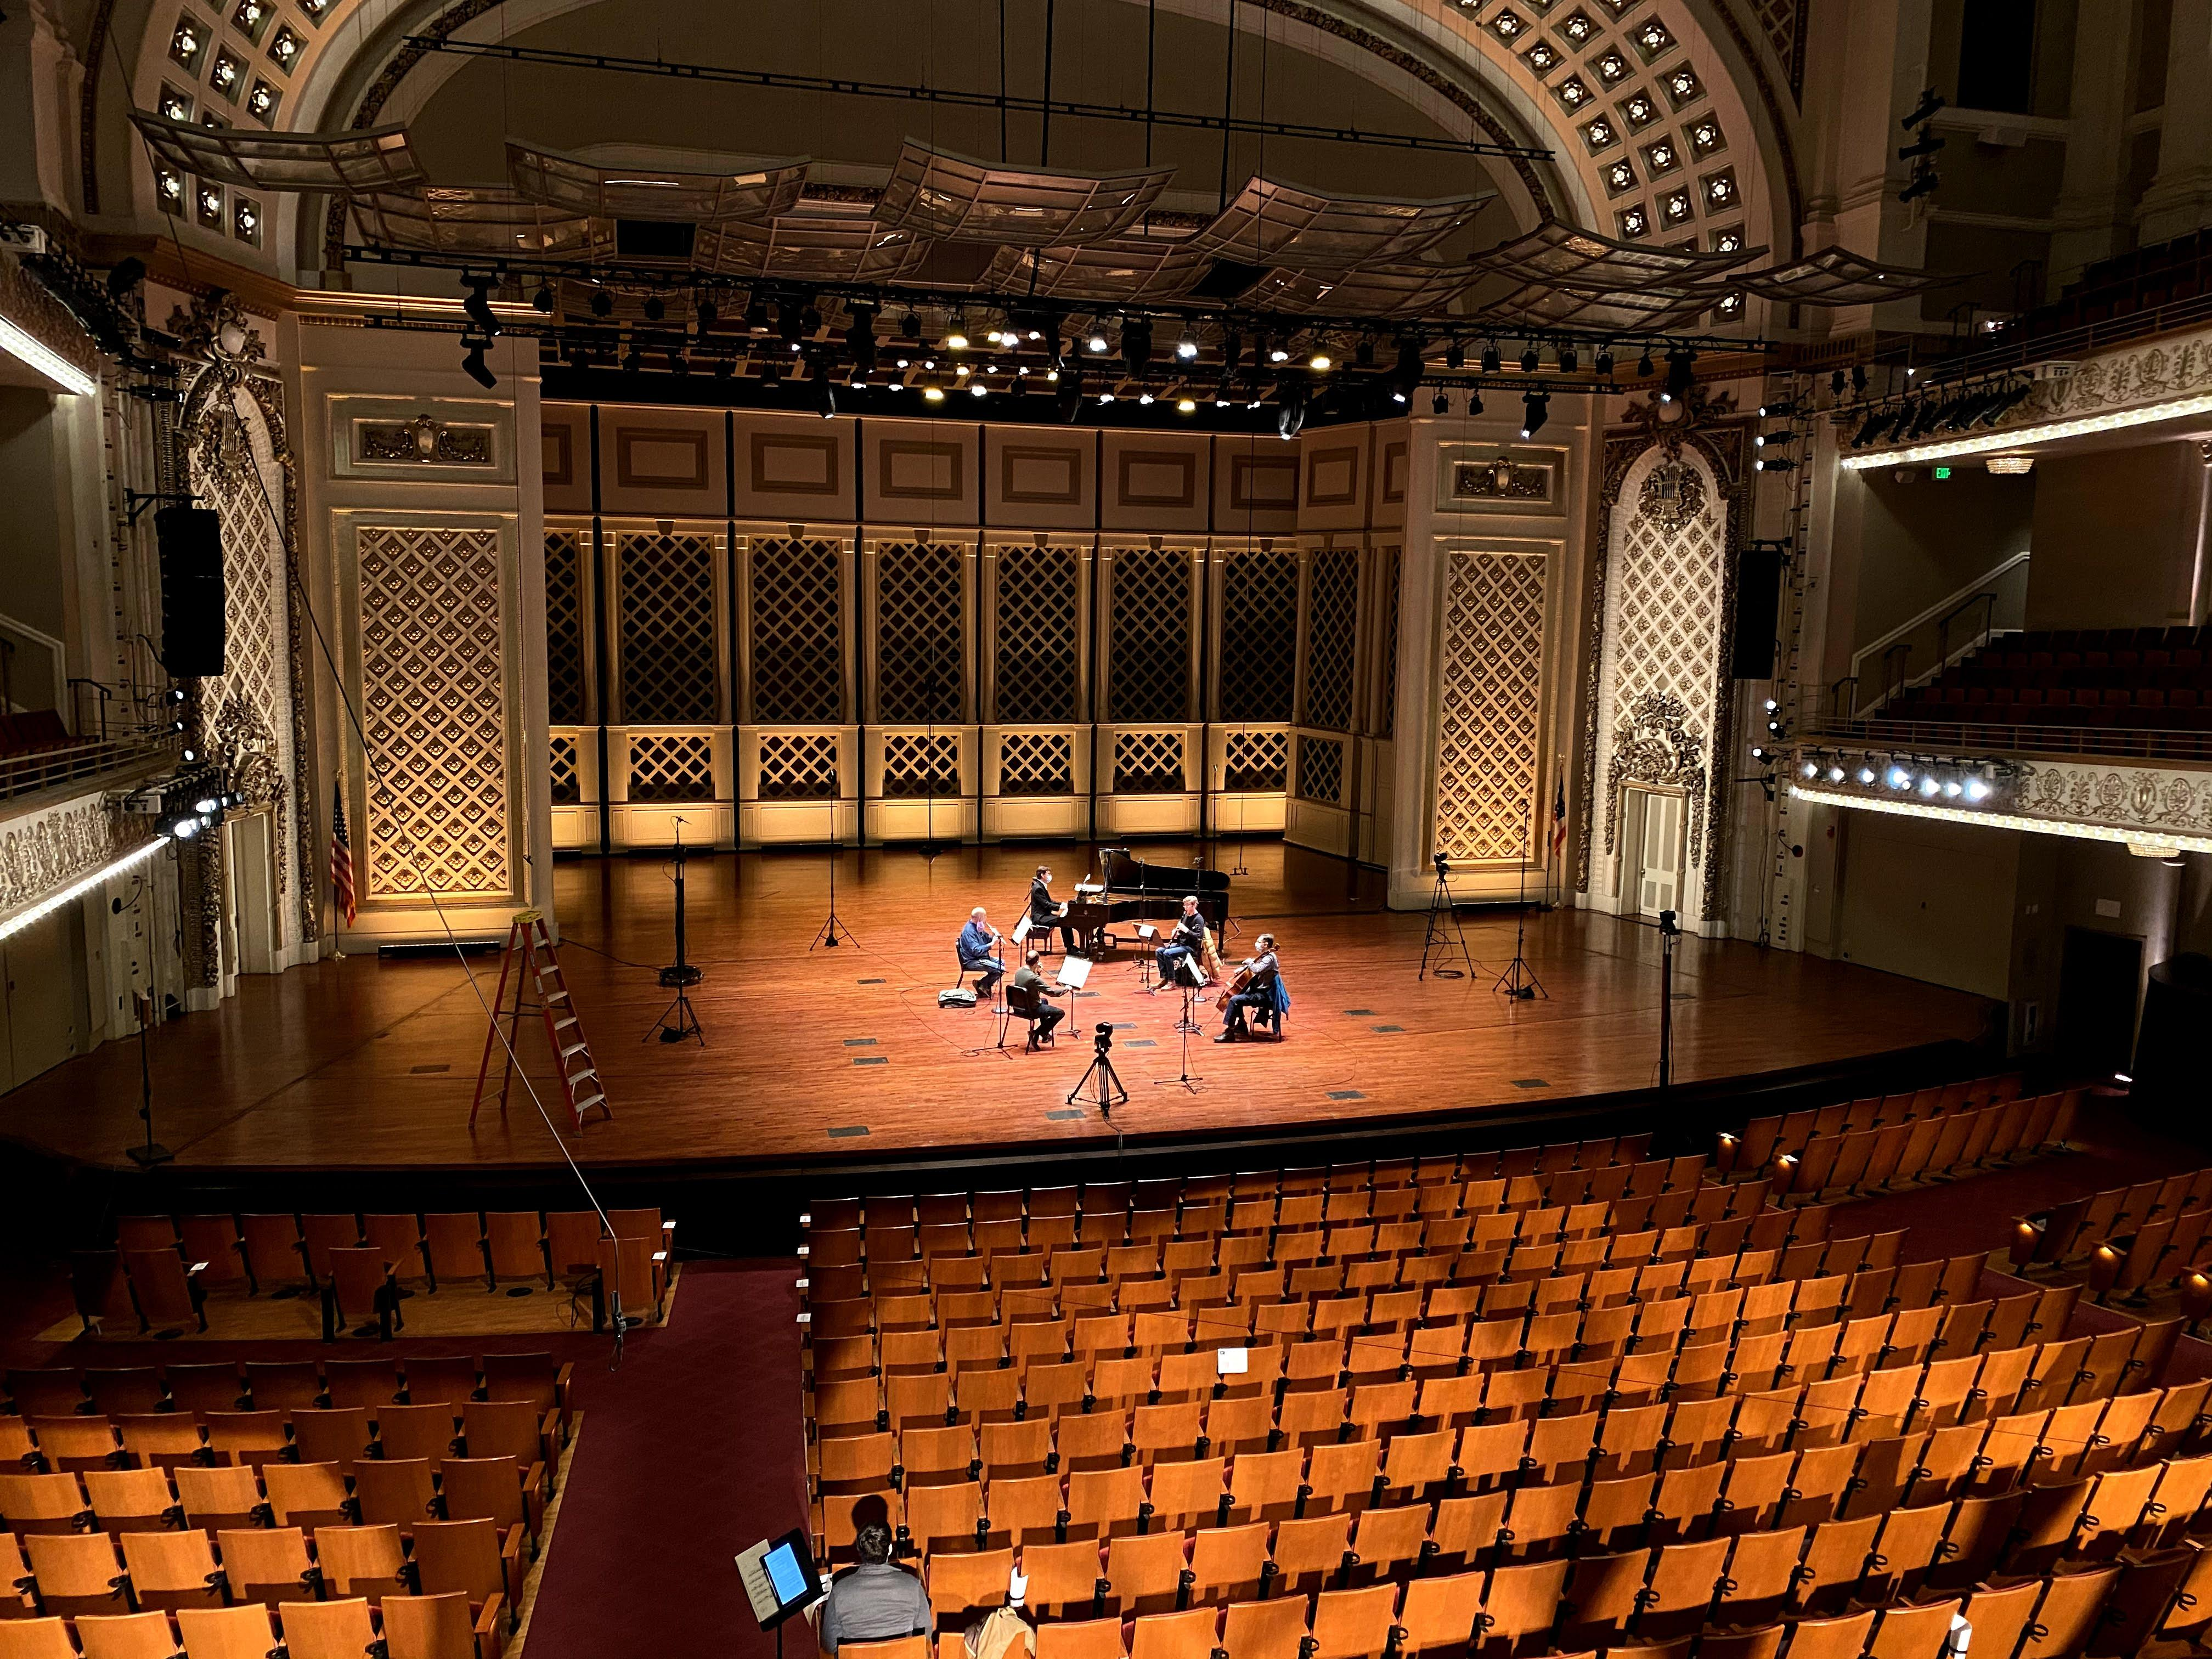 Members of the Cincinnati Symphony Orchestra record onstage in an empty hall